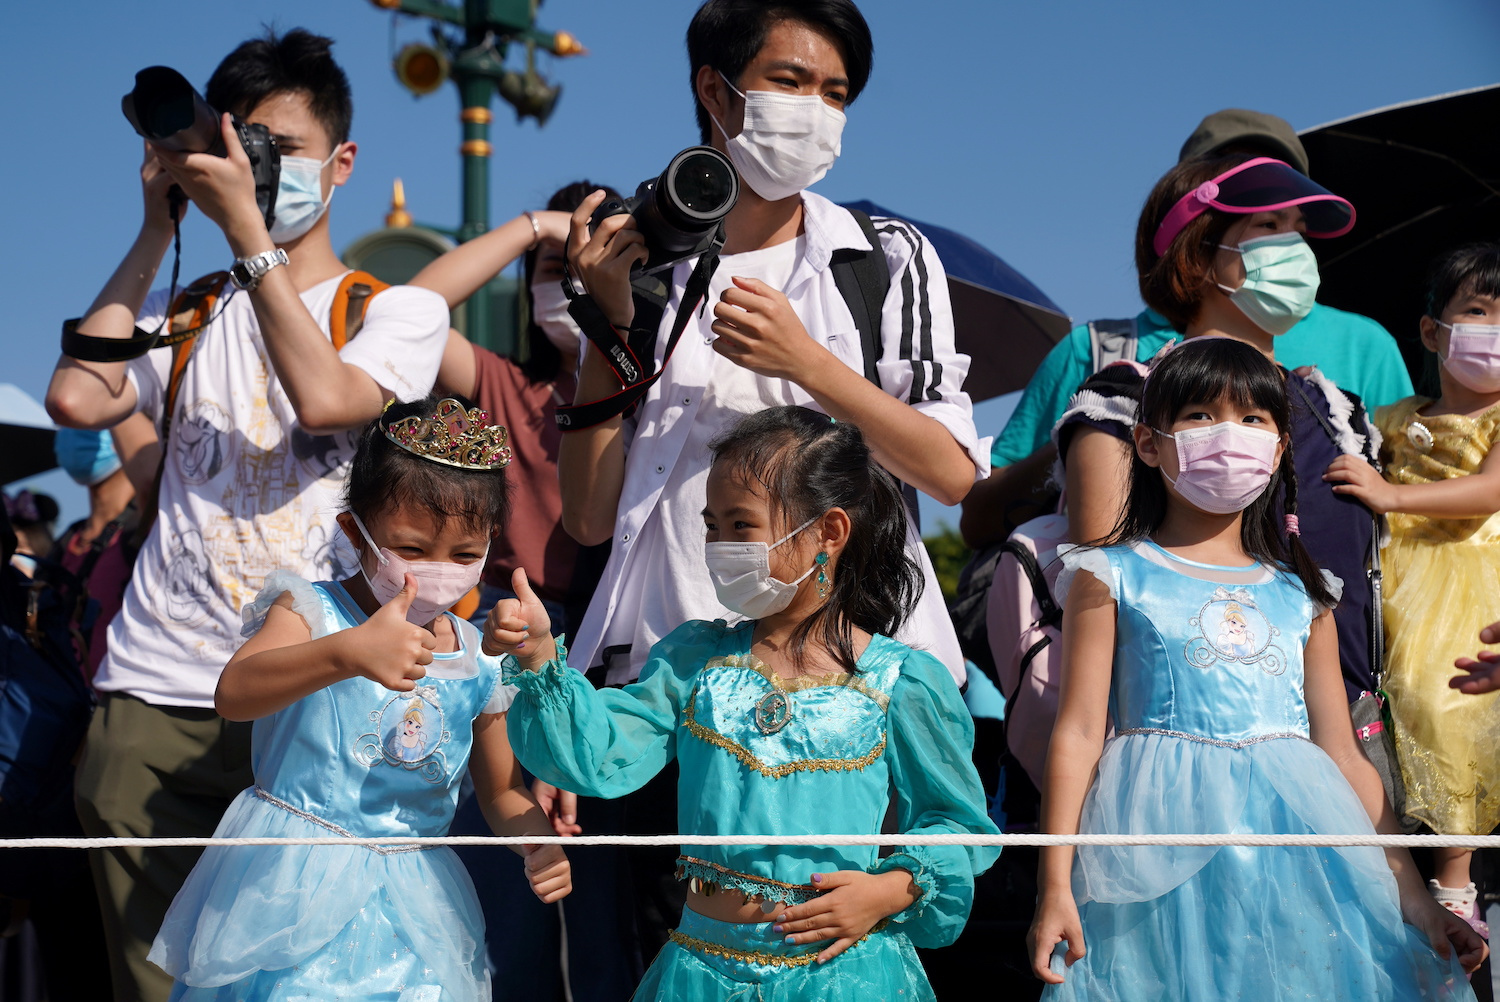 Children and adults wearing face masks enjoy an outing at Hong Kong Disneyland Resort on Friday. (Reuters Photo)